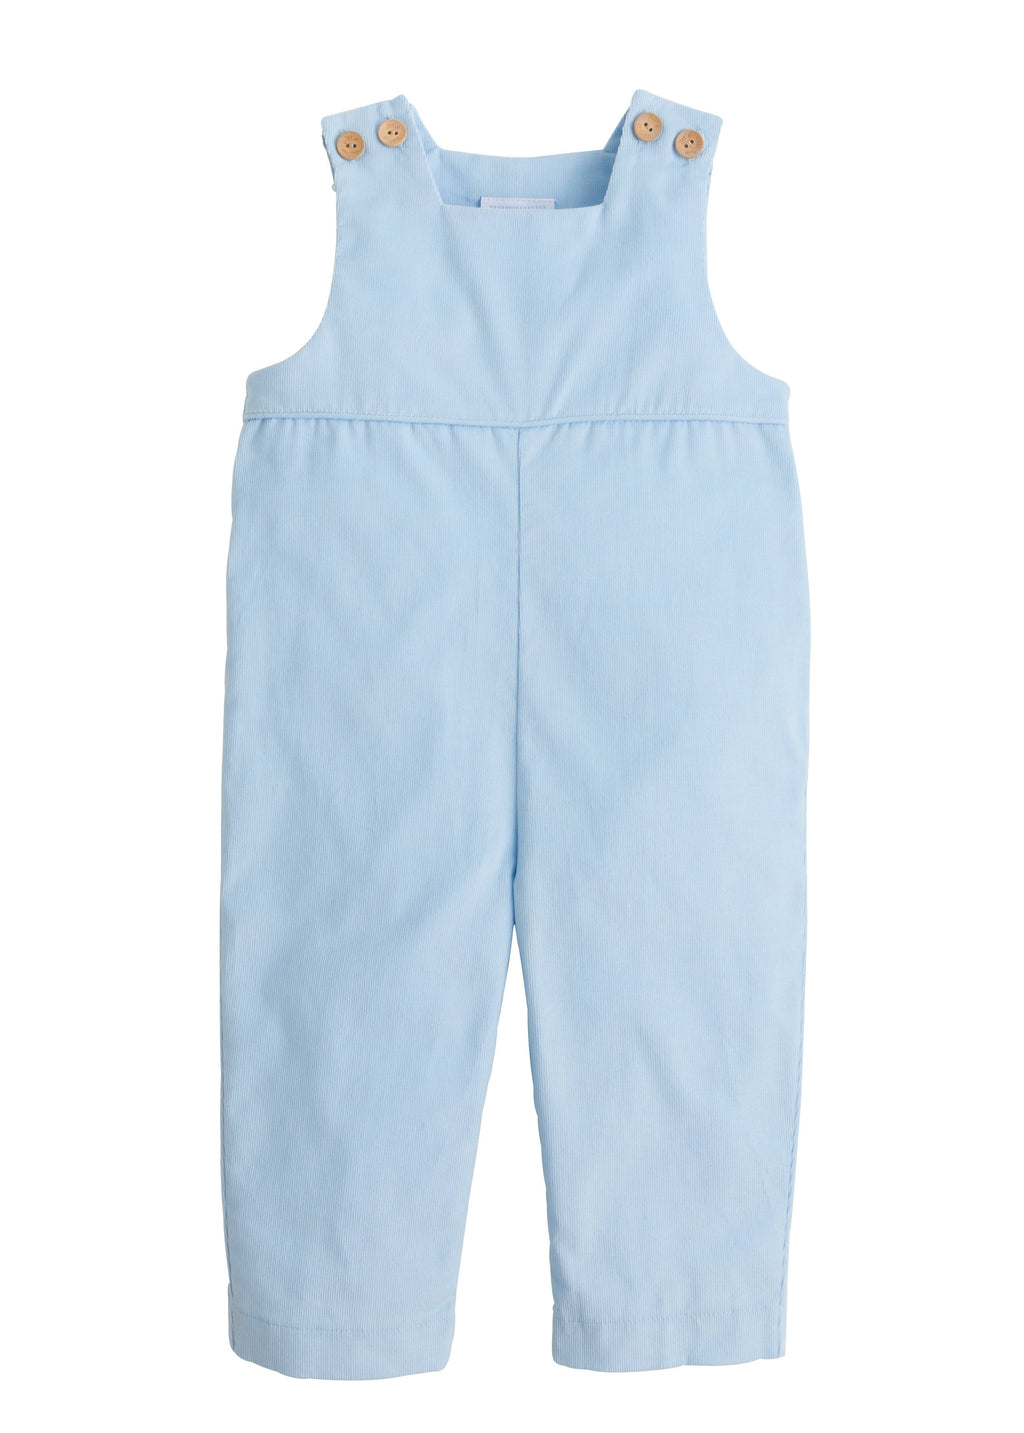 Basic Overall - Light Blue, Little English, Little English, classic children's clothing, preppy children's clothing, little English clothing, classic baby clothing, traditional children's clothing, children's clothing, baby clothing